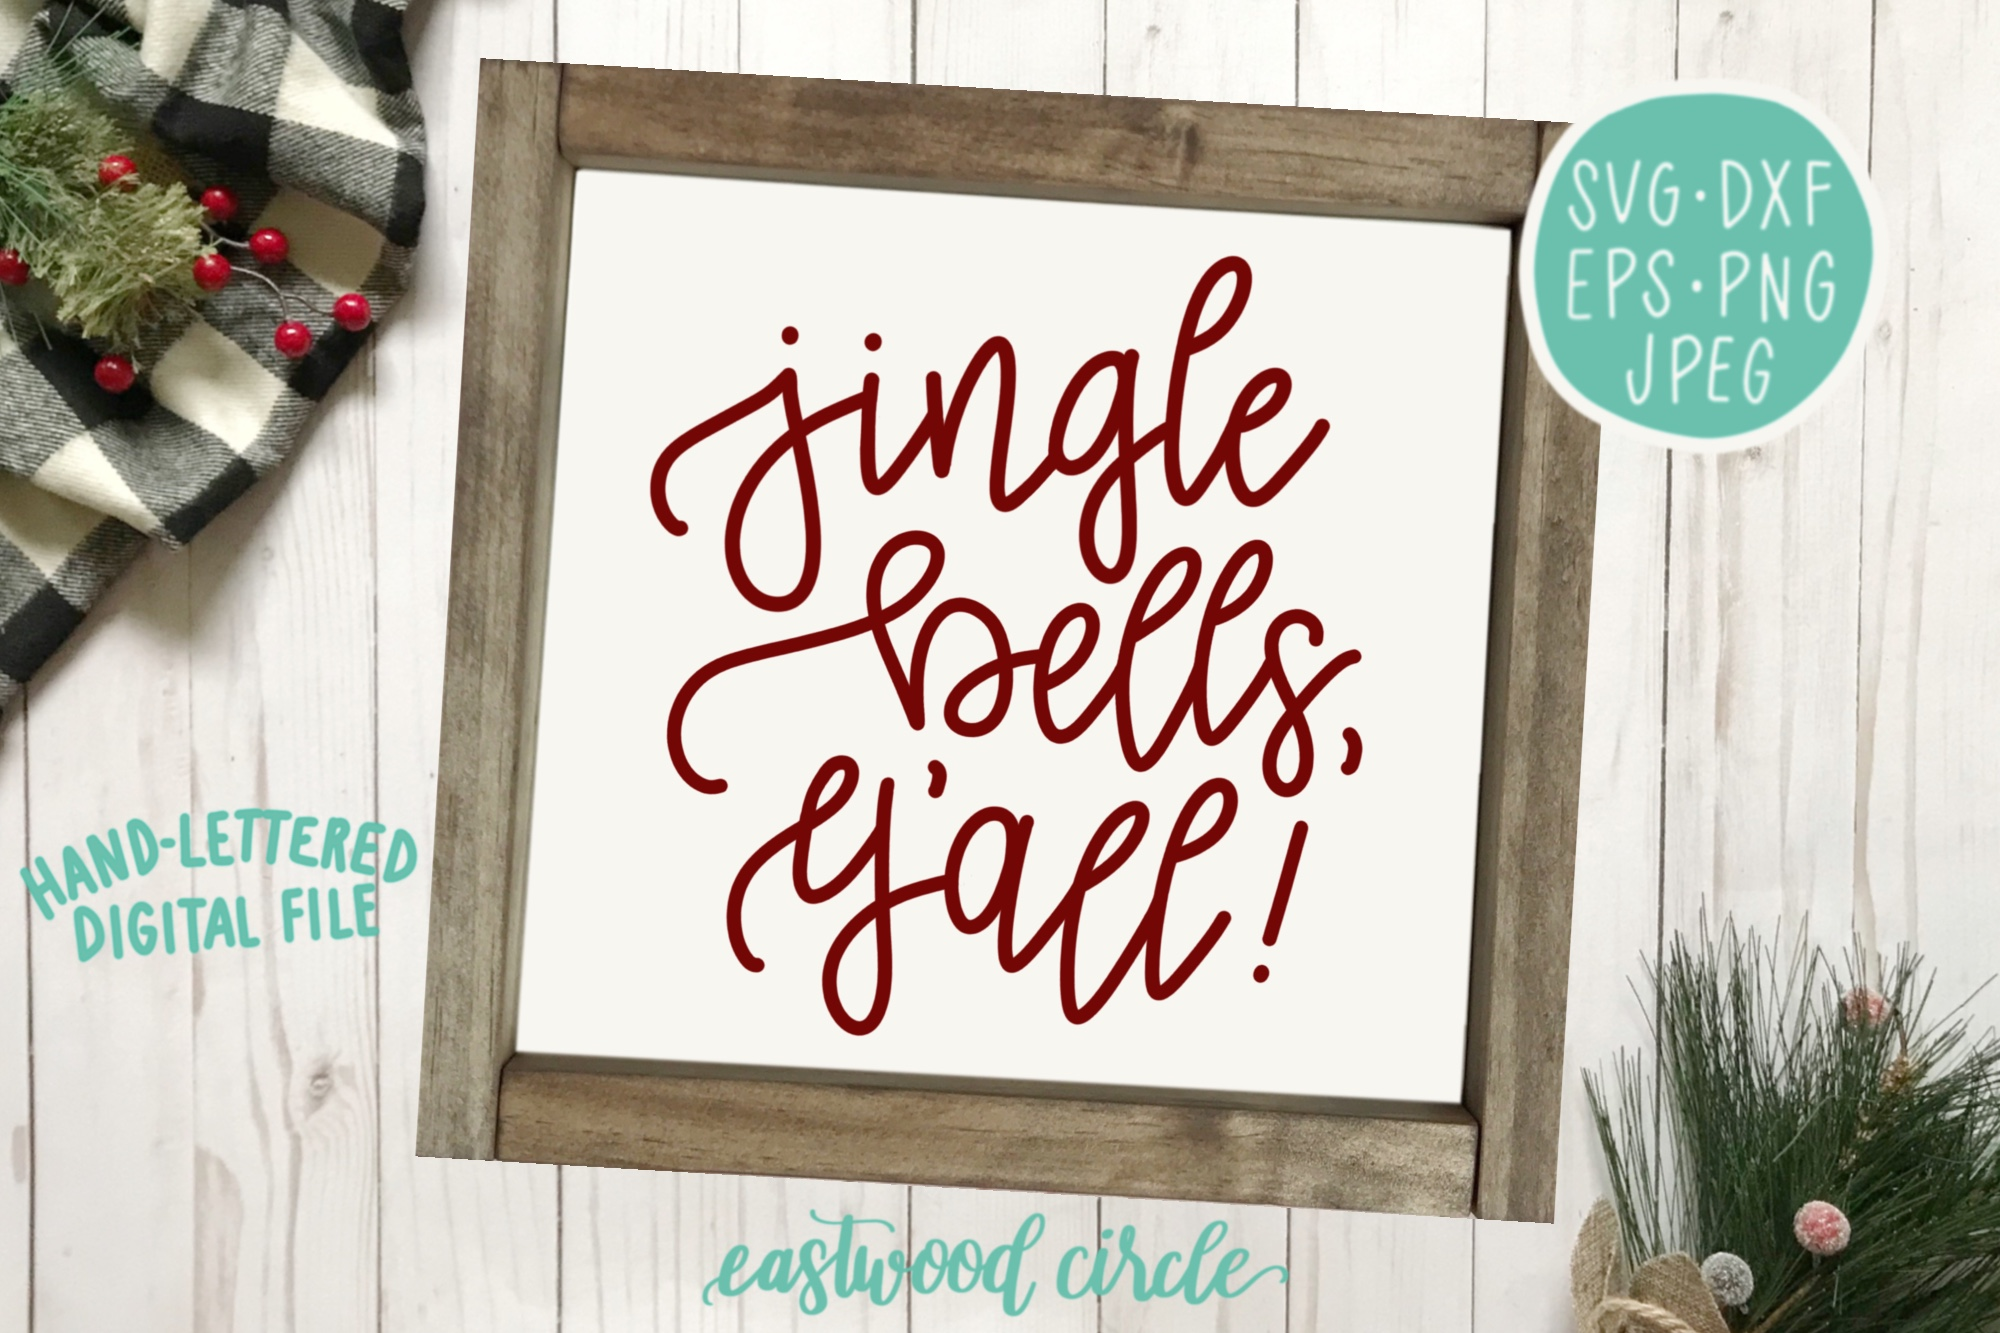 Christmas SVG Bundle - Hand Lettered SVG Files for Signs example image 2